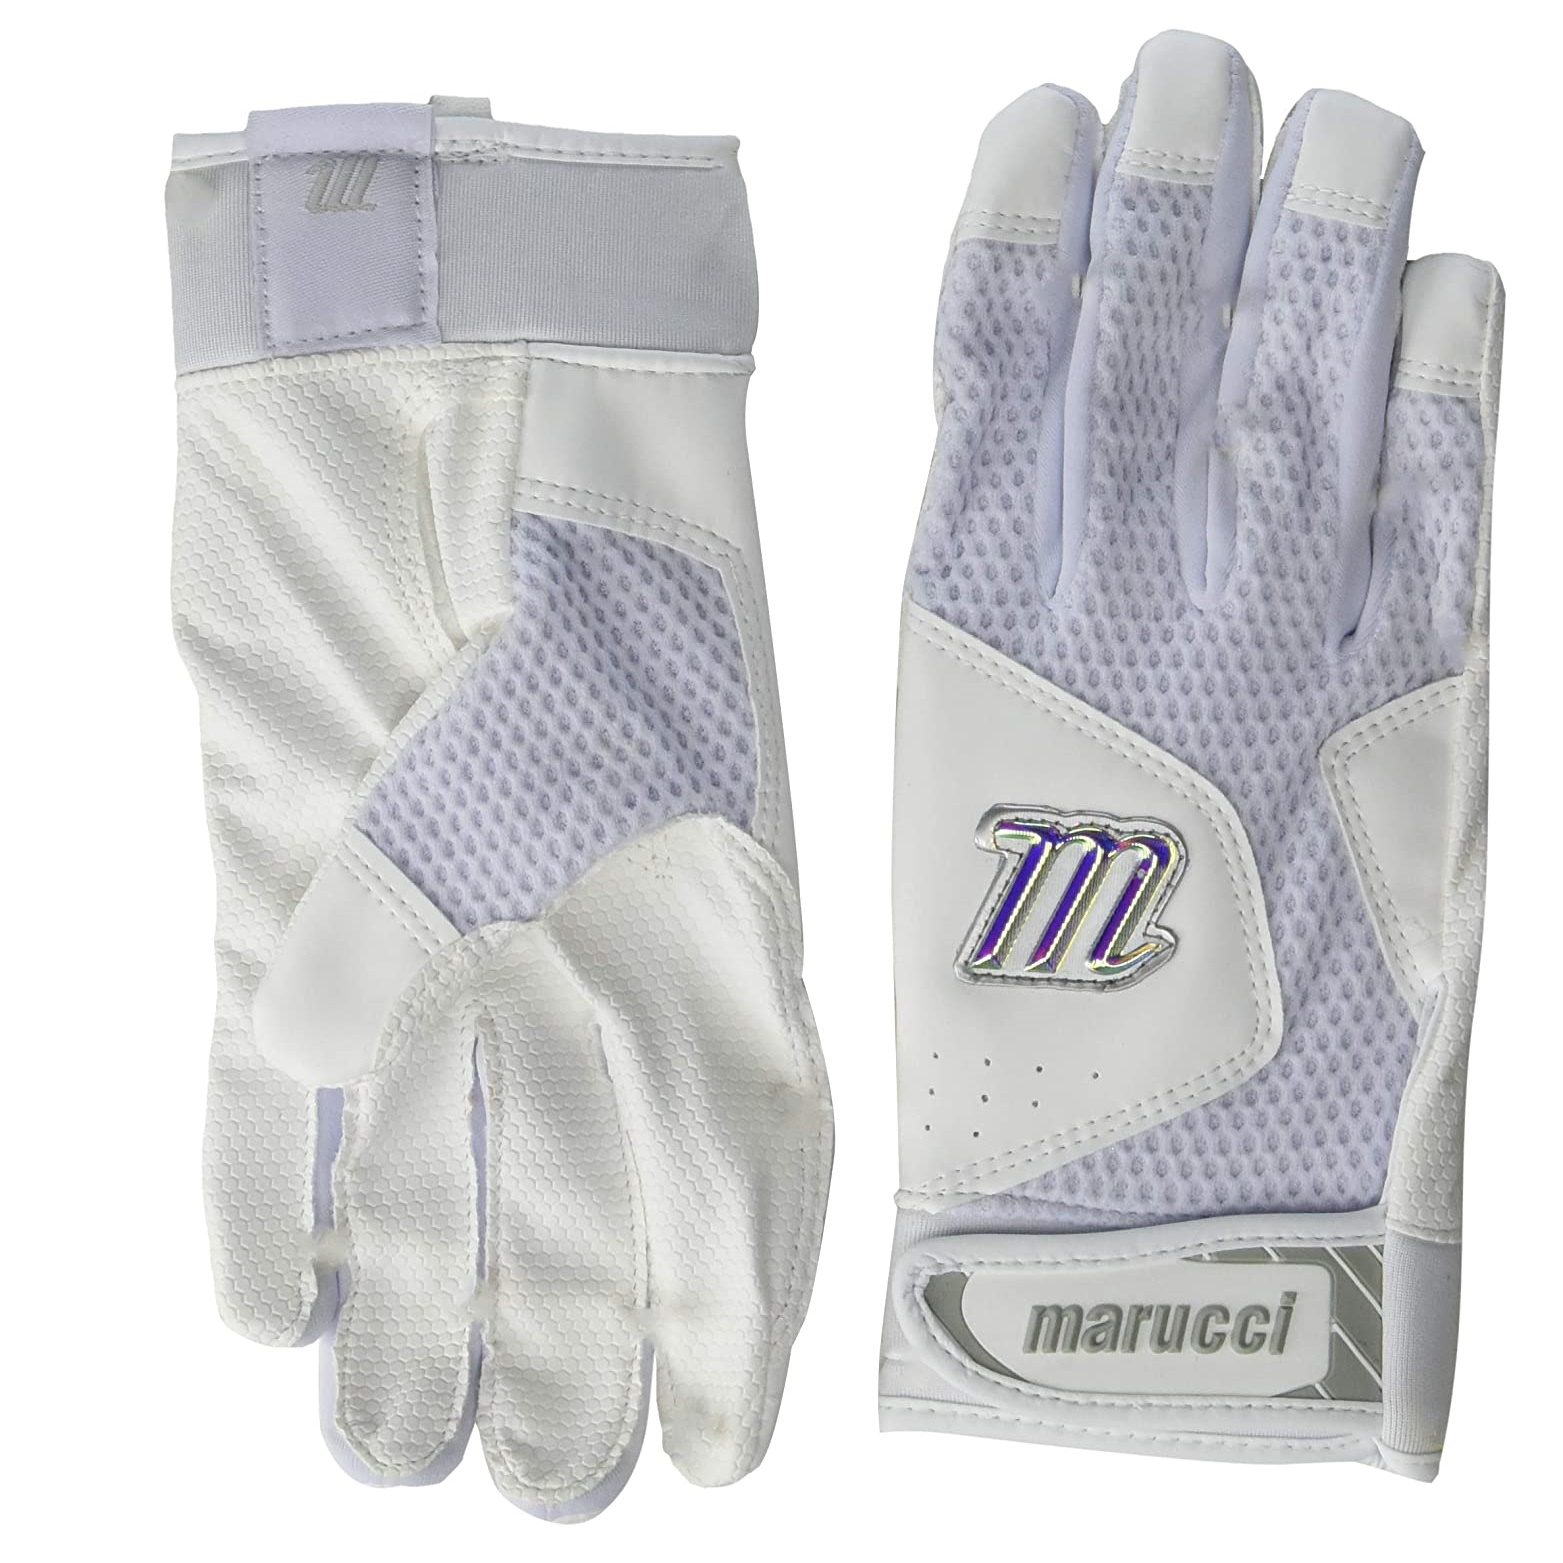 marucci-mbgqst2-w-w-as-quest-2-batting-gloves-white-adult-small MBGQST2-WW-AS Marucci  An evolution of Marucci's earlier batting glove line this year's Quest